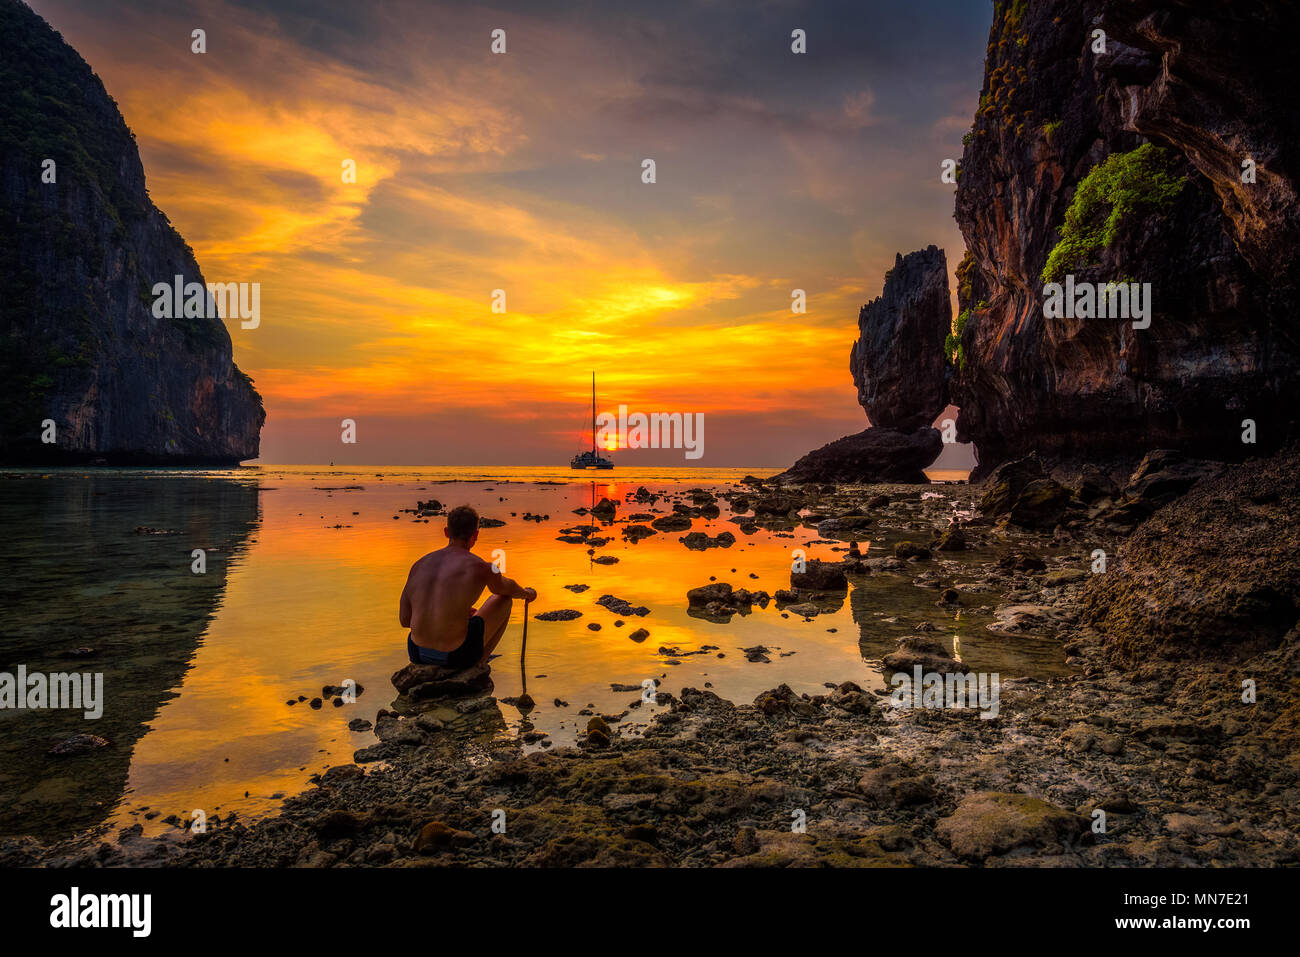 Young boy enjoys dramatic sunset at Maya beach in Thailand - Stock Image